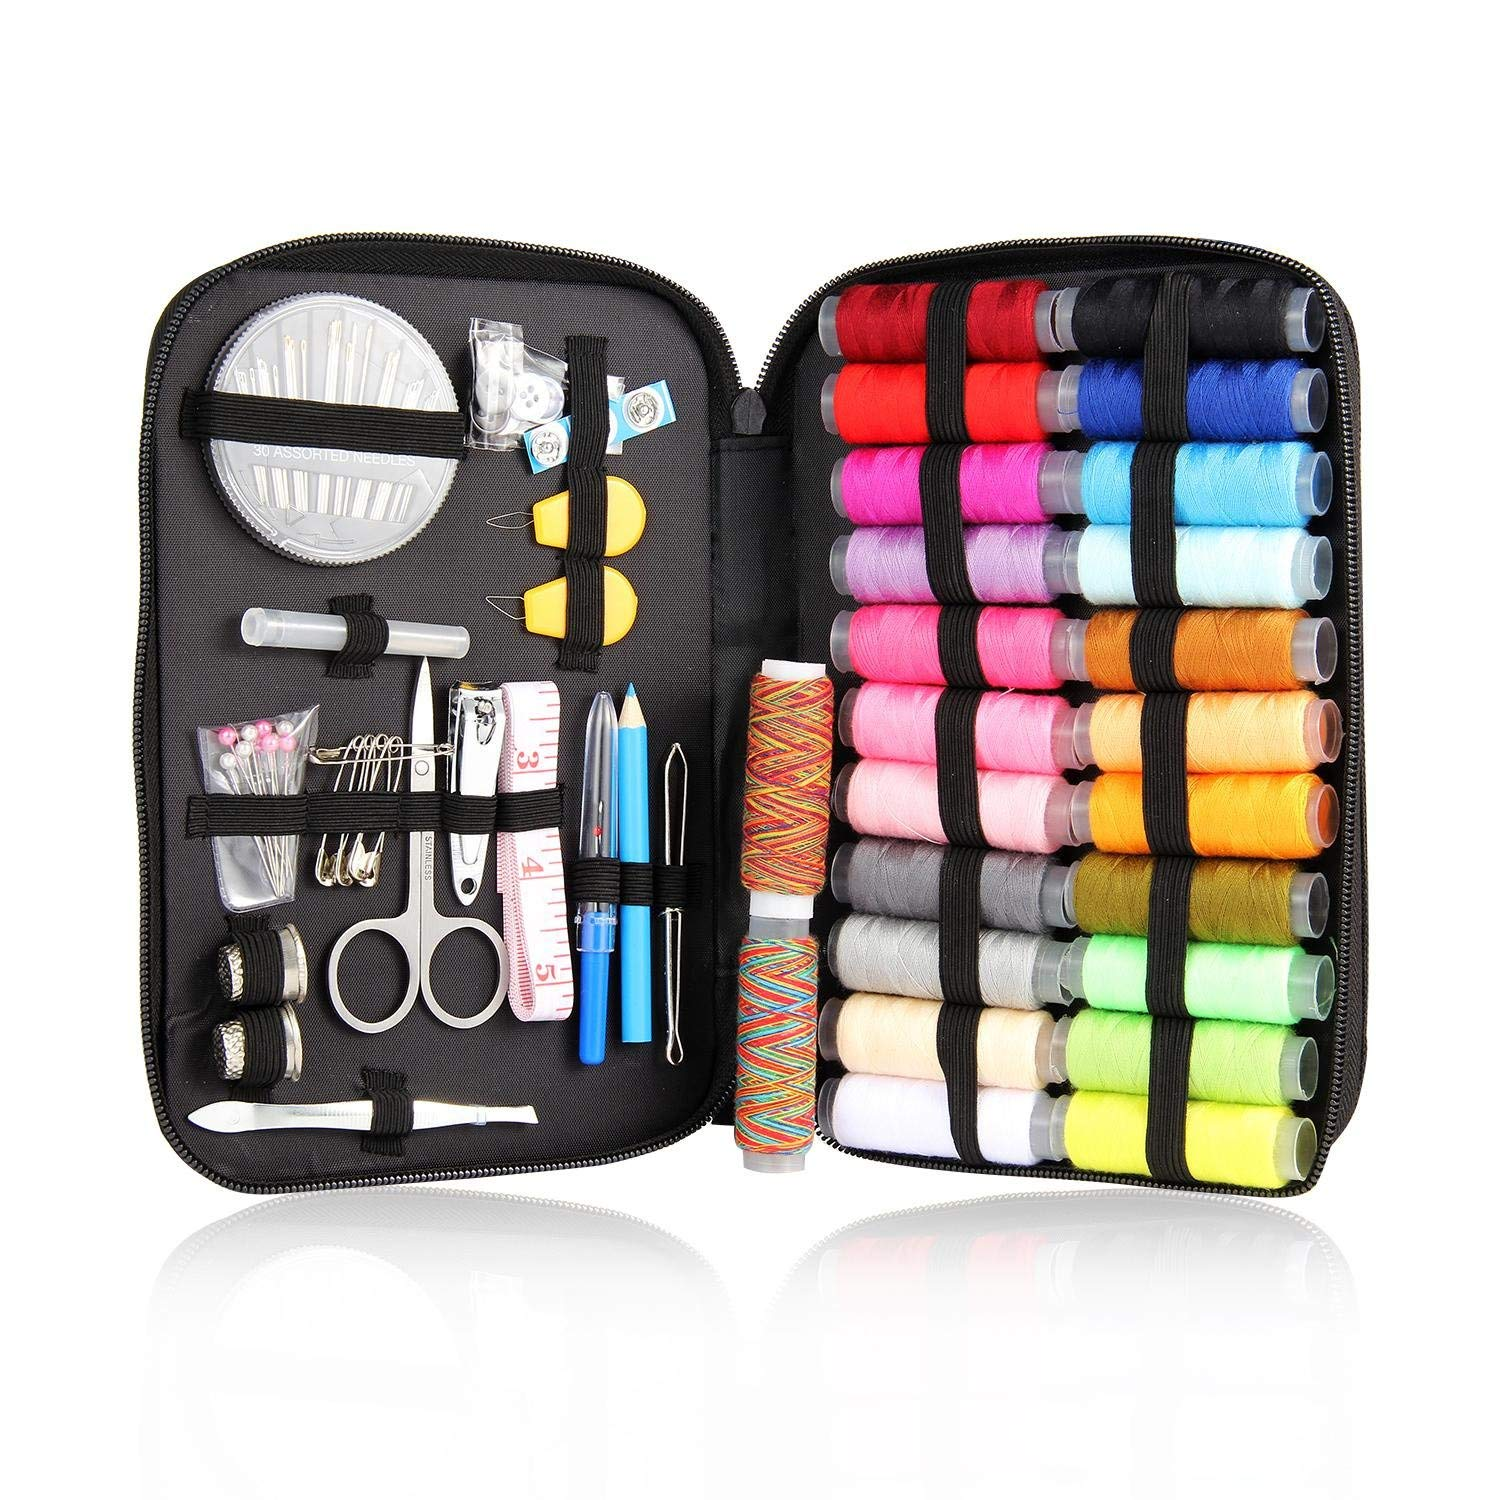 25/90/94Pcs Multifunction Sewing Box Sewing Thread Stitches Needles Tool Set Cloth Buttons Craft Scissor Travel Sewing Kits Case 94pcs